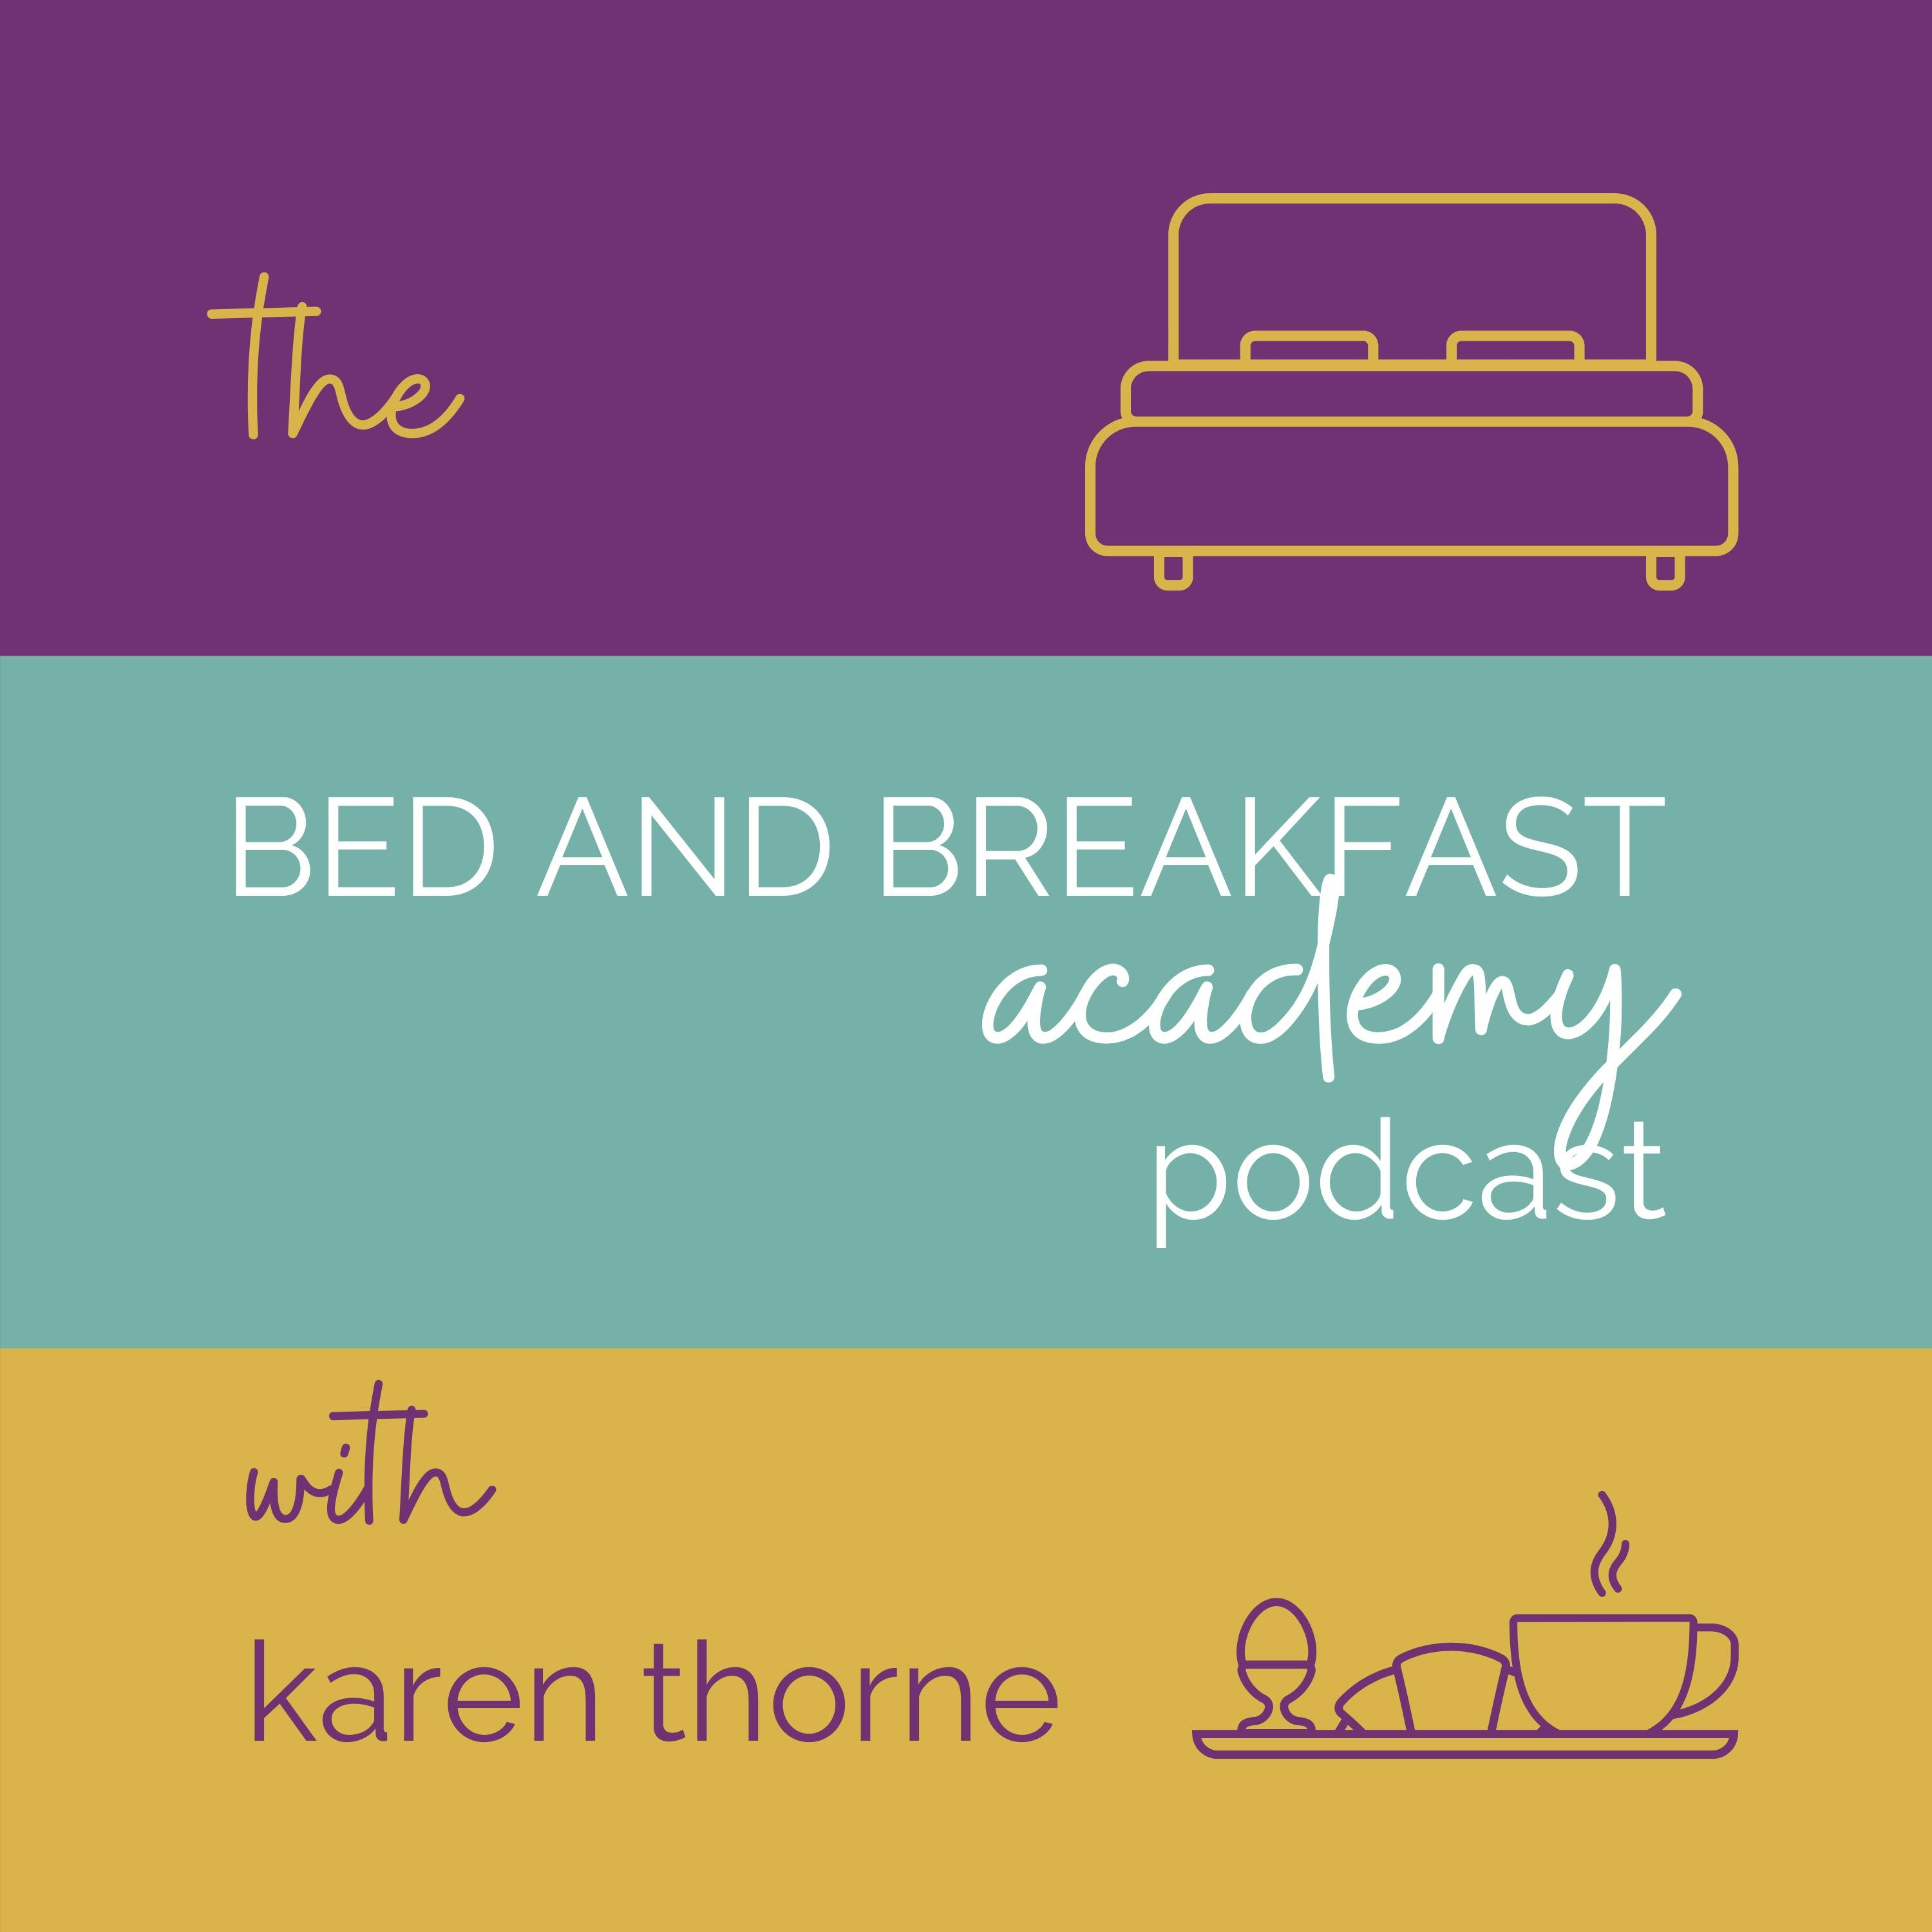 The Bed and Breakfast Academy Podcast